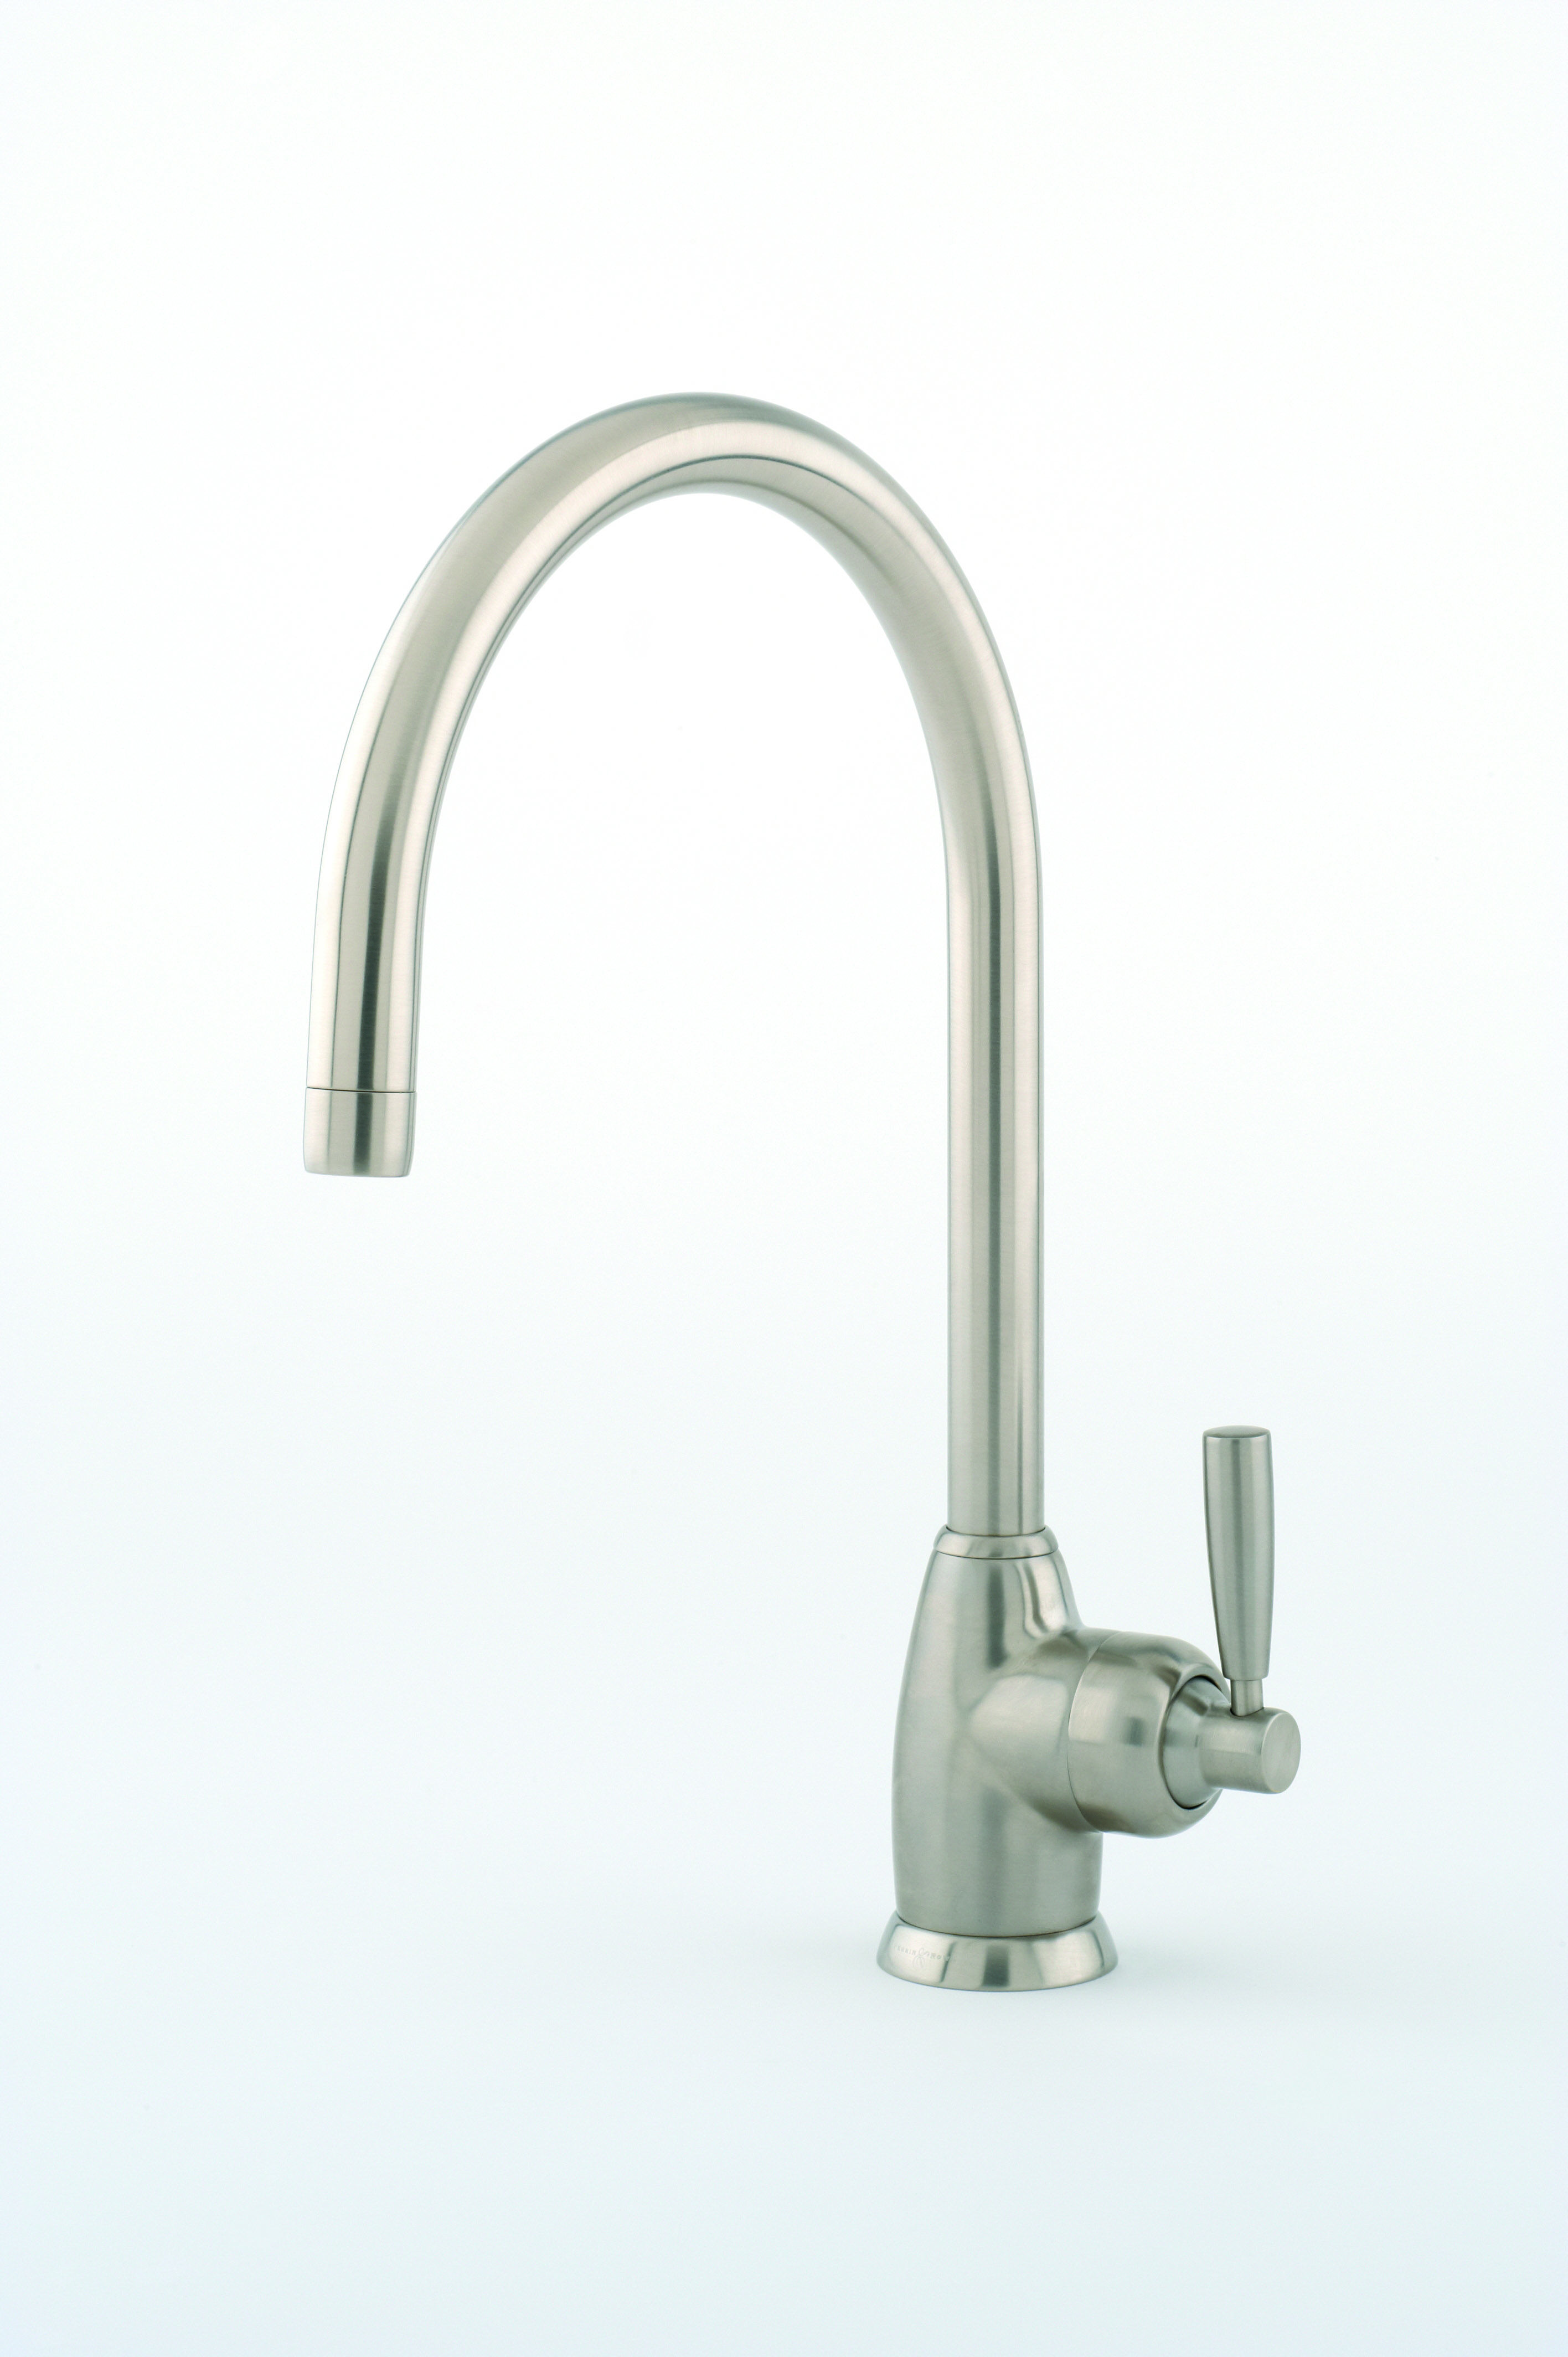 perrin rowe mimas single lever sink mixer with c spout in pewter rh pinterest com